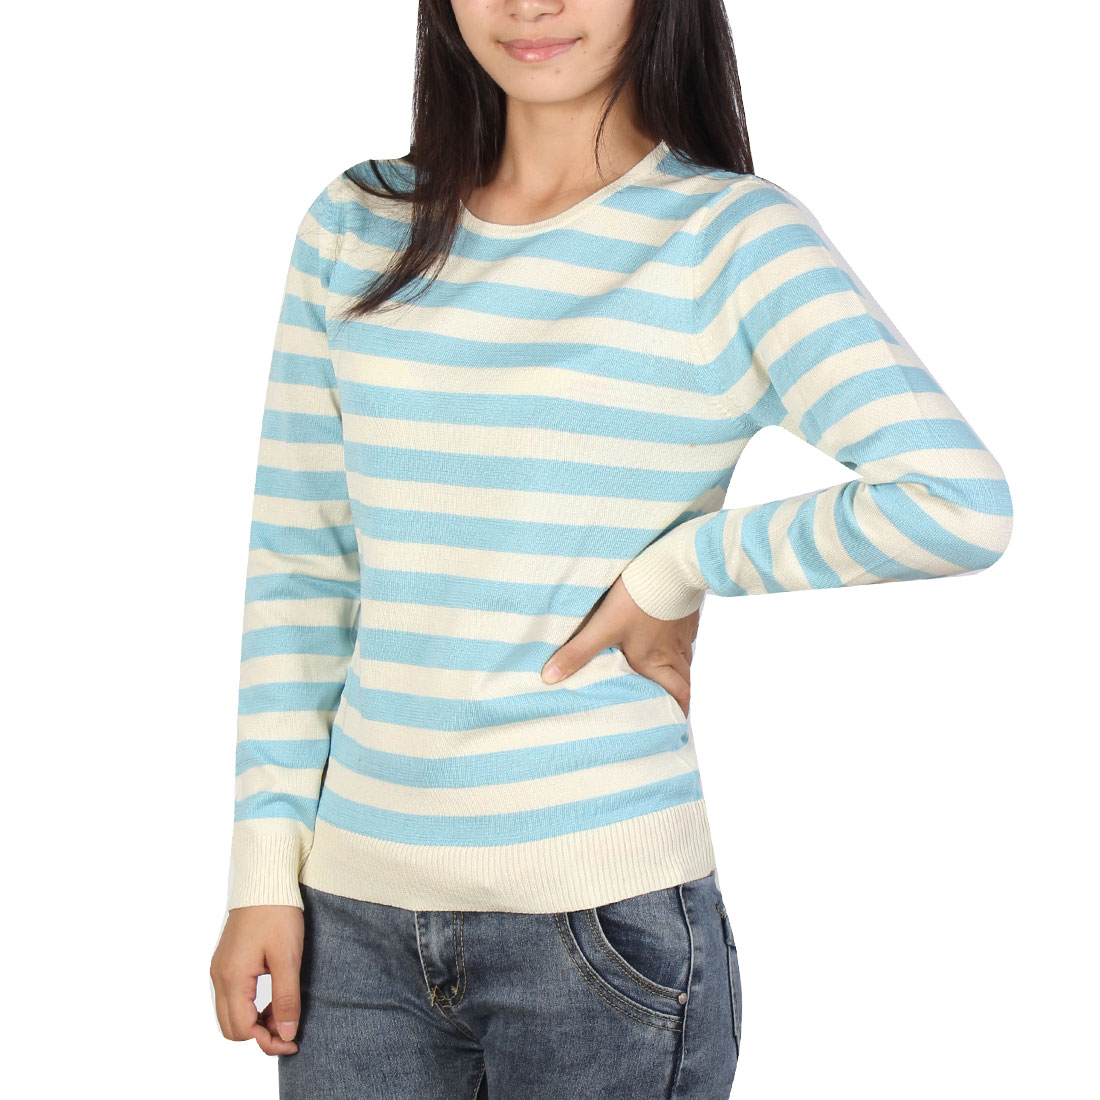 Woman Pullover Stripes Crew Neck Casual Soft Sweater Blue White XS